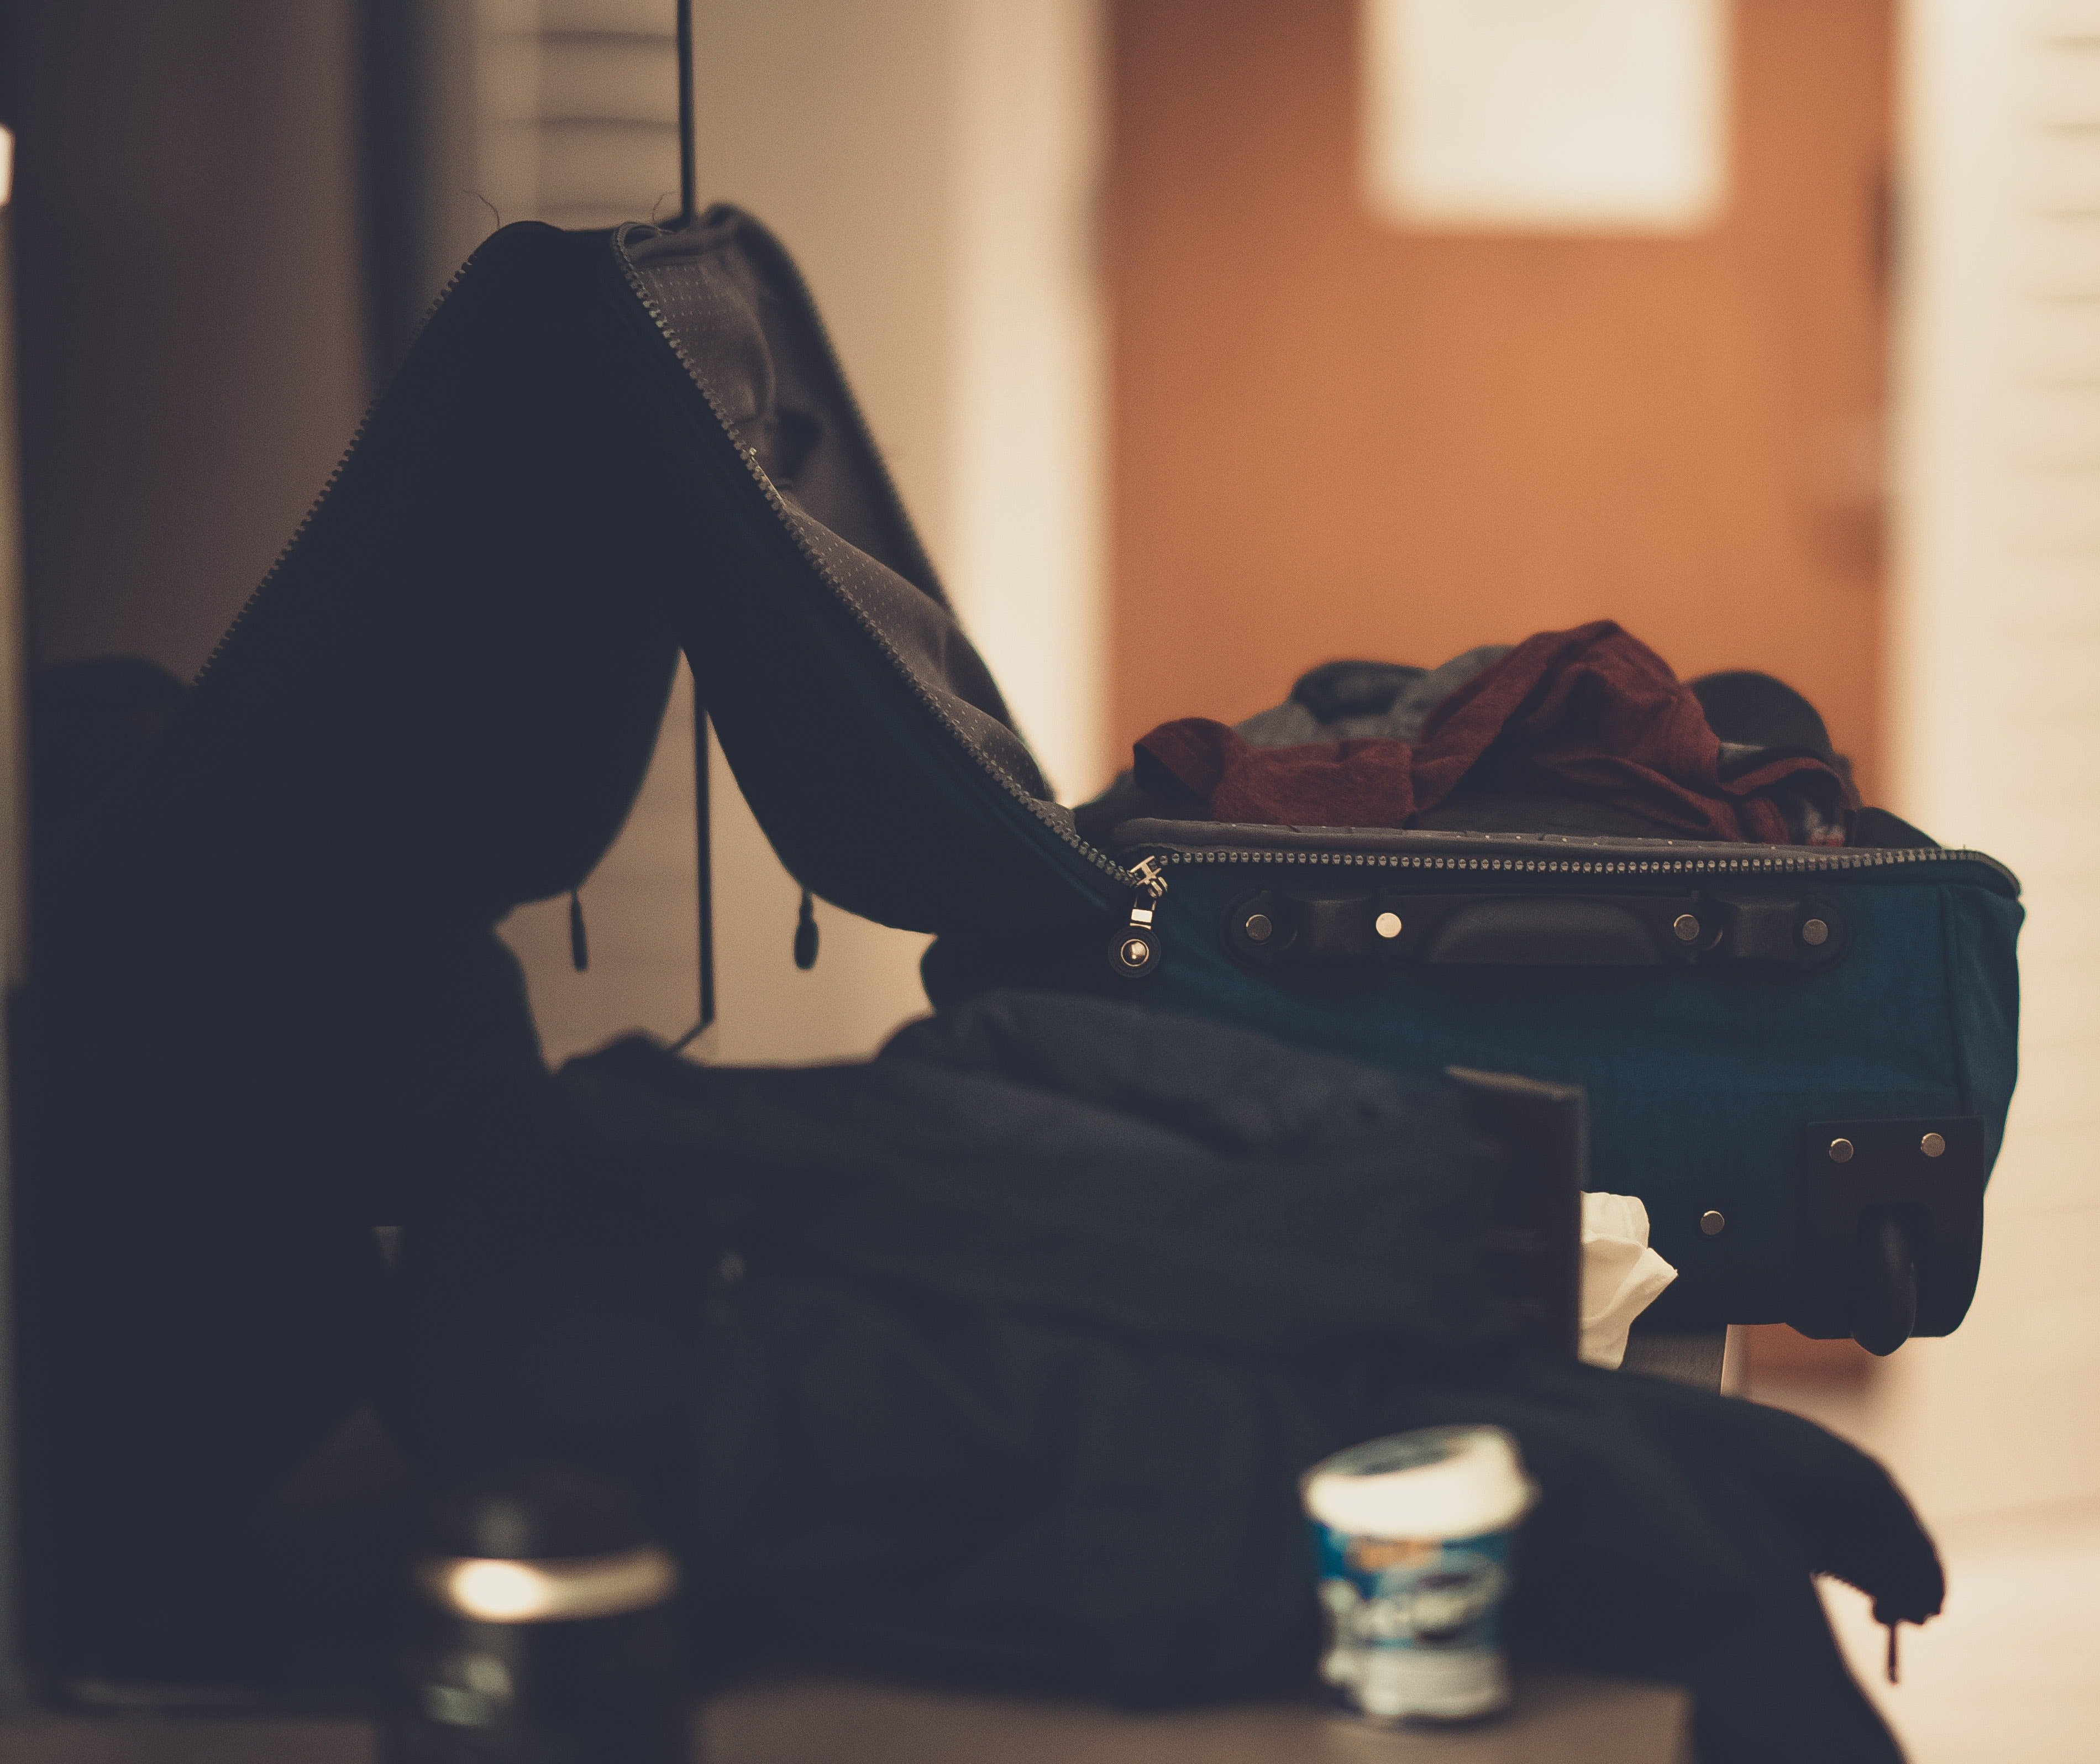 Jake began packing up his things at his own house   Source: Pexels